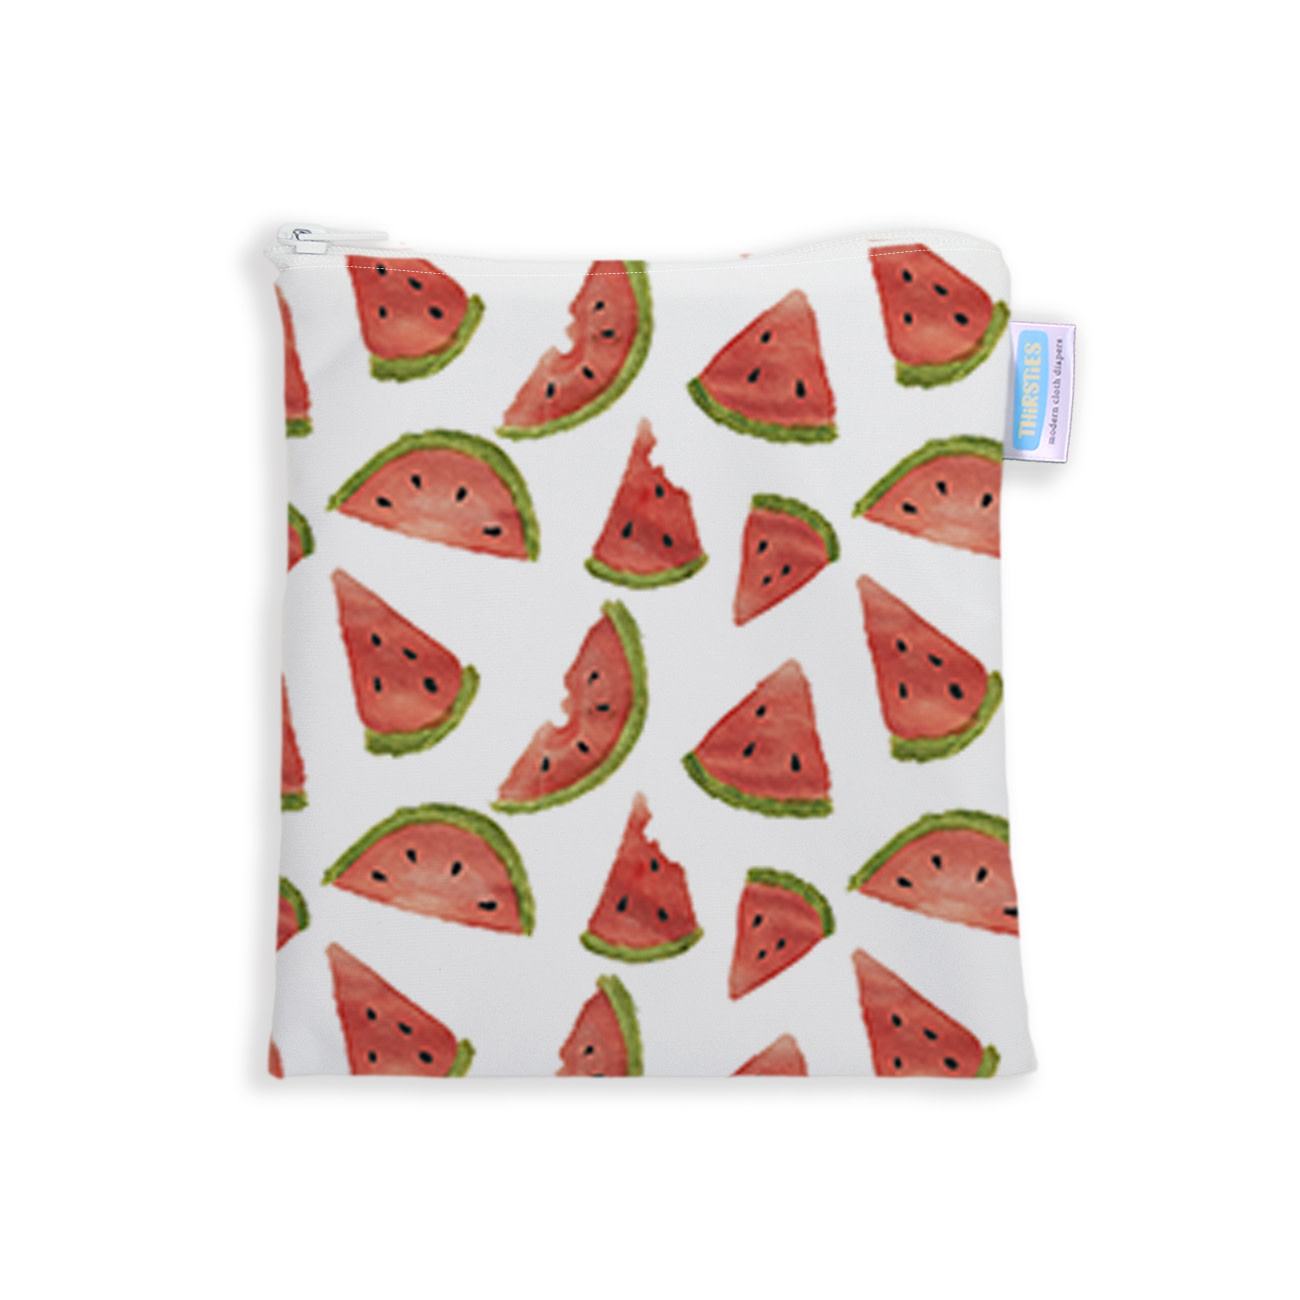 Thirsties Thirsties Sandwich & Snack Bag Melon Party